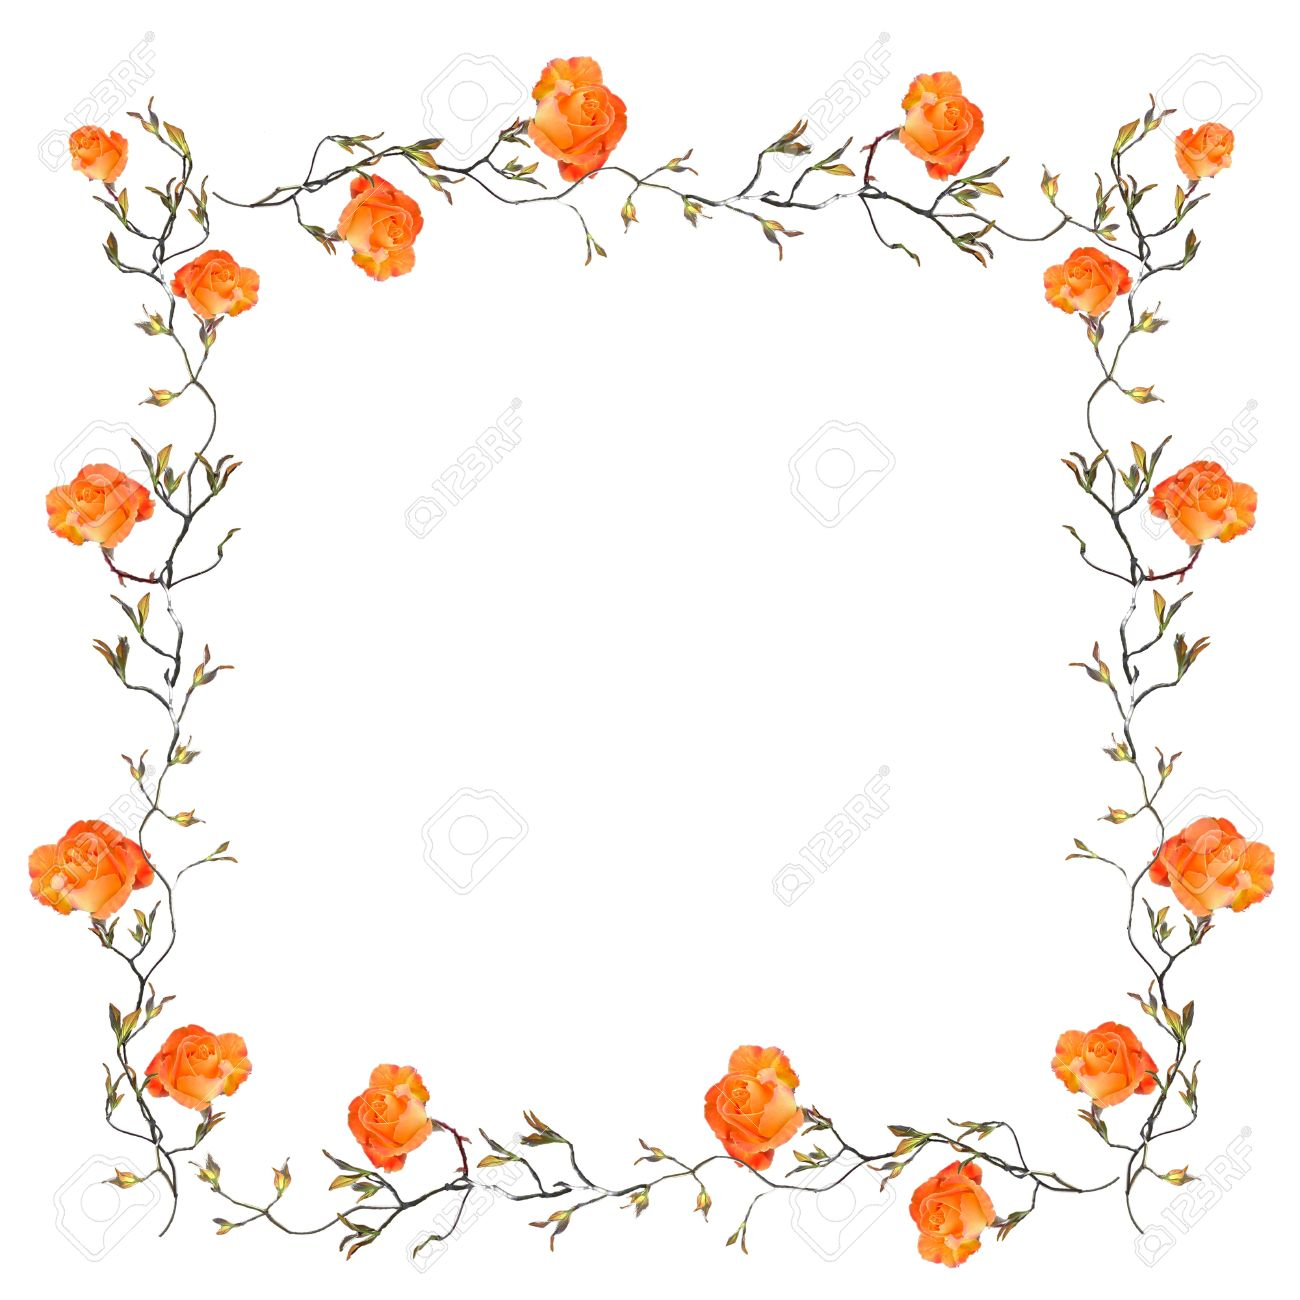 Orange Floral Border With White Copy Space Stock Photo